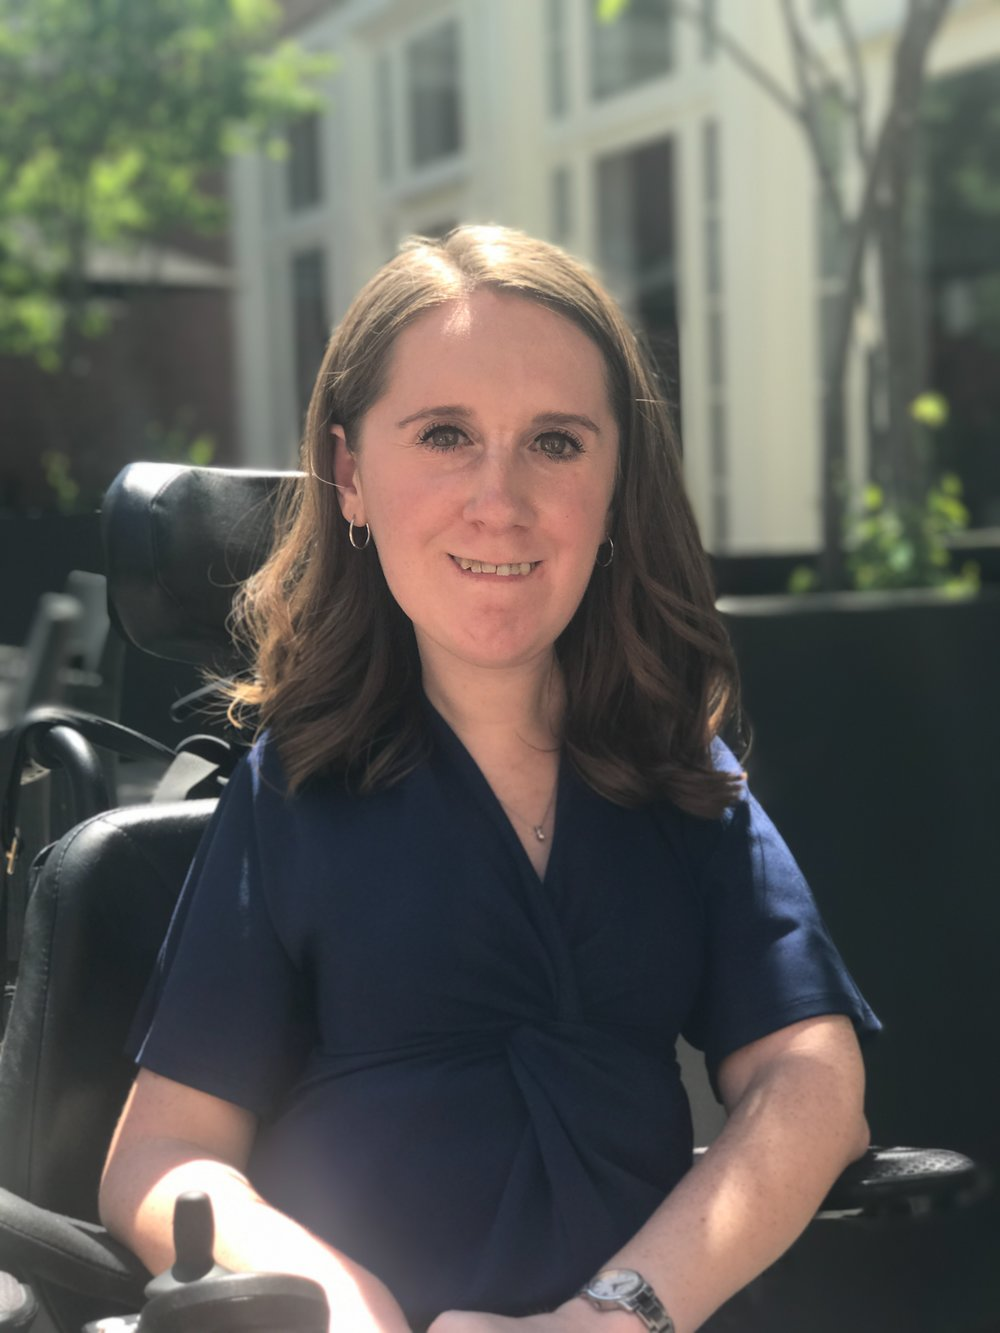 Photo of the founder, Heather Tomko, sitting outside in her wheelchair.